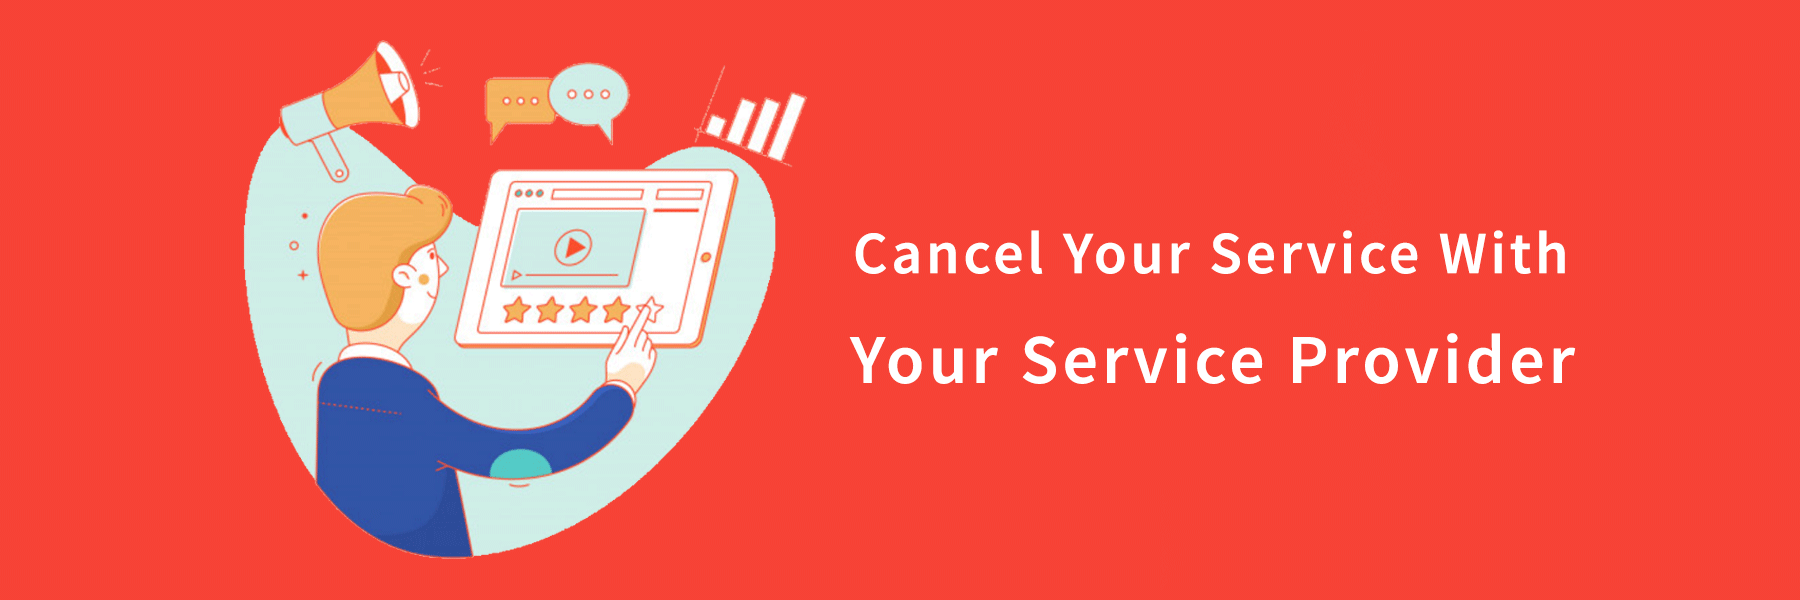 how-to-cancel-service